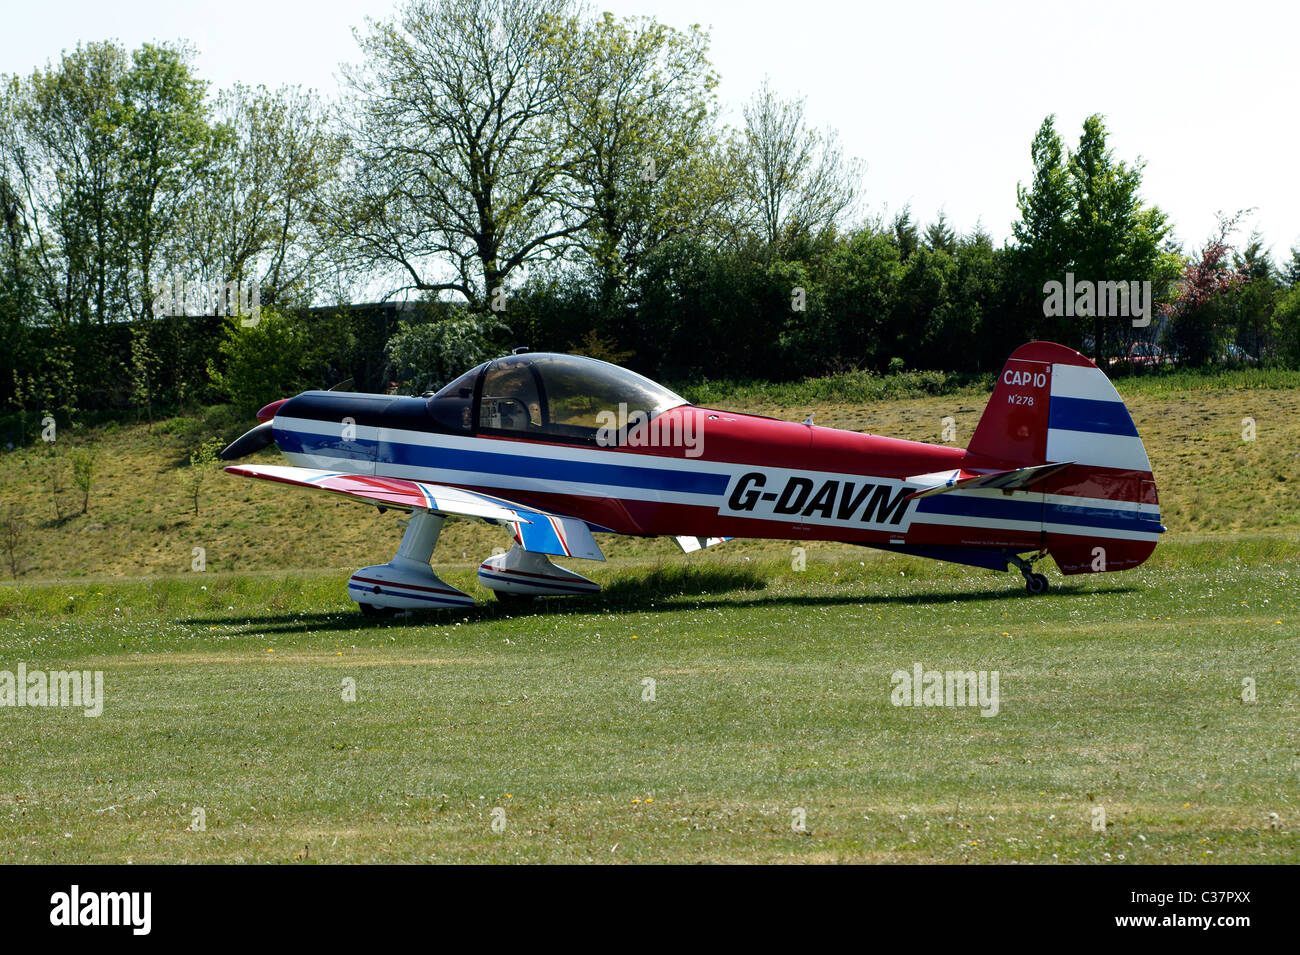 AKROTECH EUROPE CAP 10  UTILITY & AEROBATIC LIGHT AIRCRAFT. LYCOMING AE10-360-B2F PISTON ENGINE - Stock Image